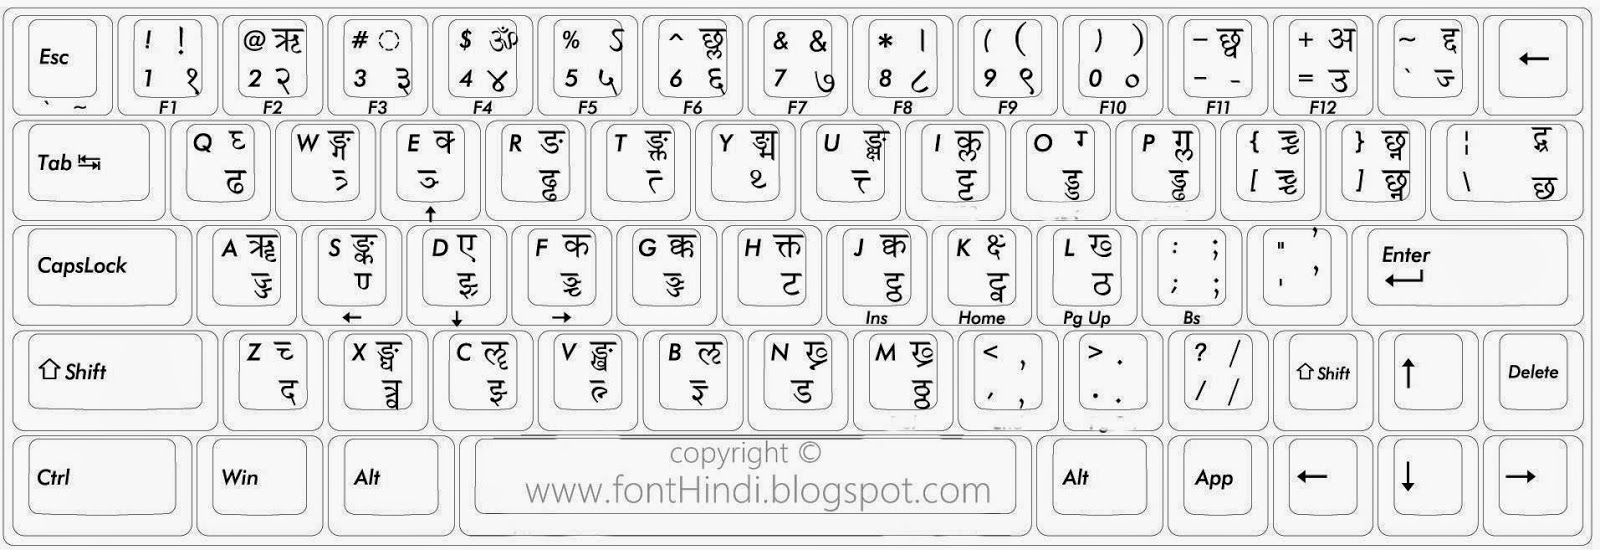 Sanskrit Keyboard Layout for SD-TT Surekh font